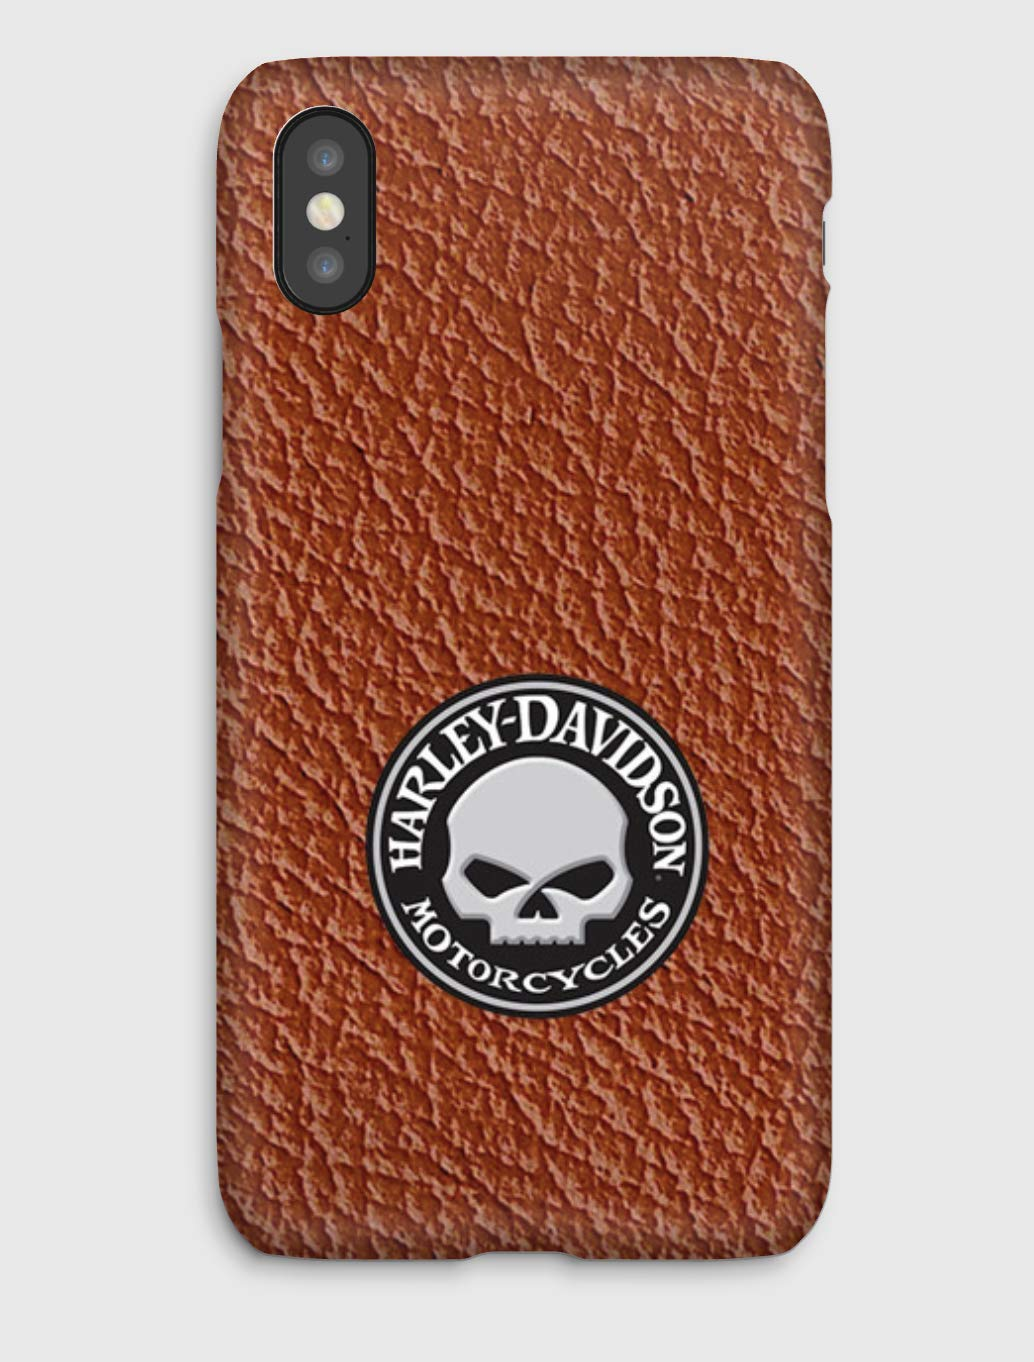 Cover iPhone X,XS,XS Max,XR, 8, 8+, 7, 7+, 6S, 6, 6S+, 6+, 5C, 5, 5S, 5SE, 4S, 4, Just in Harley Davidson